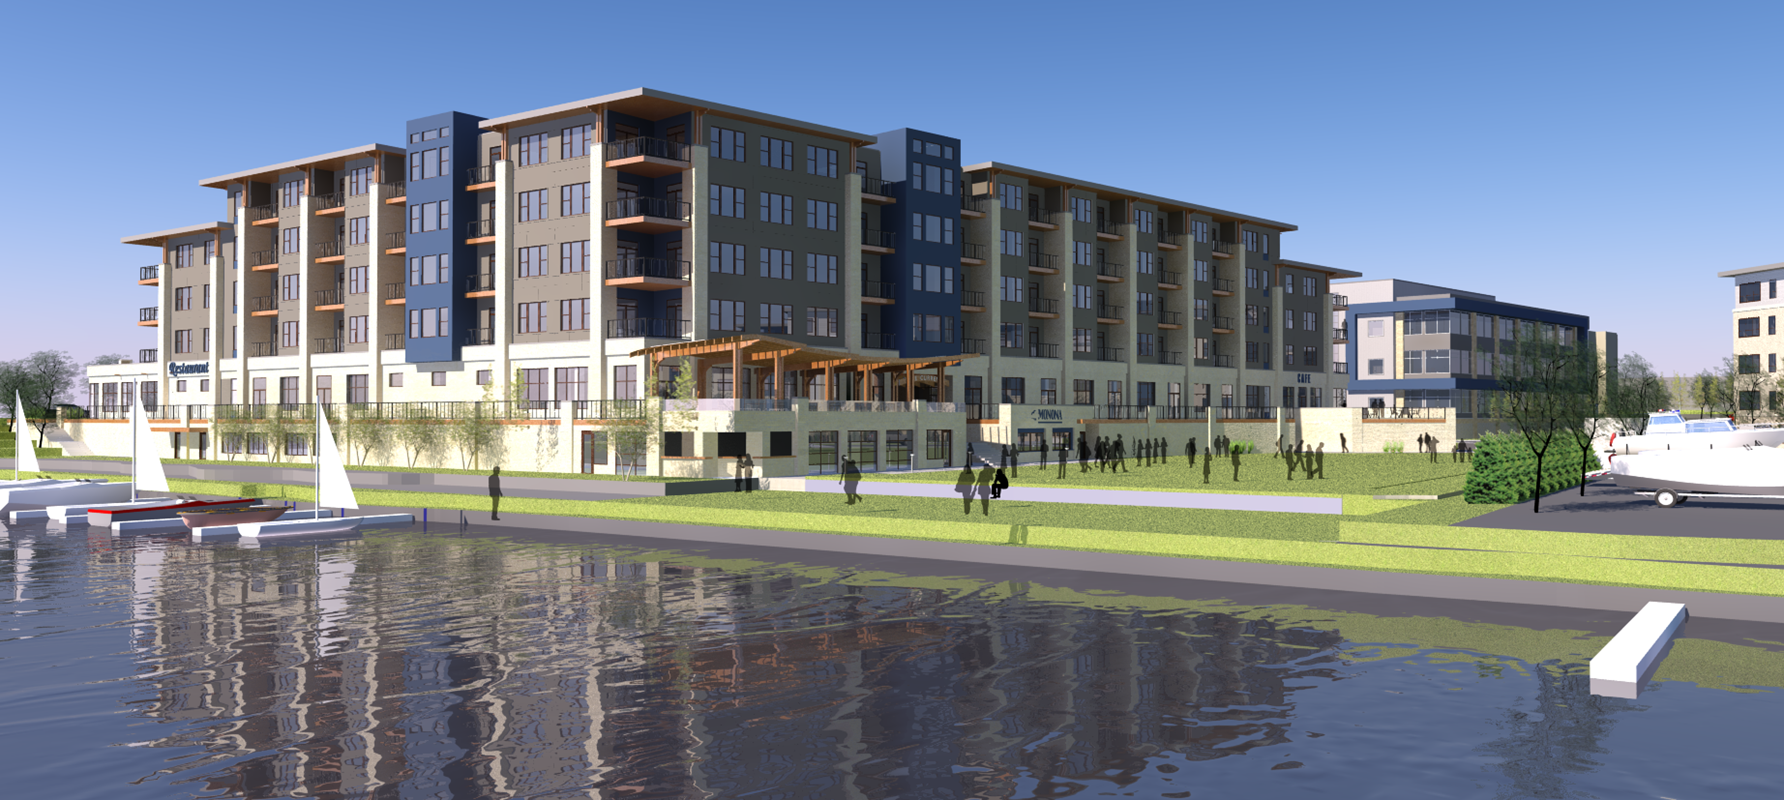 The Current @ Yahara Riverfront Redevelopment | Monona, Wis.